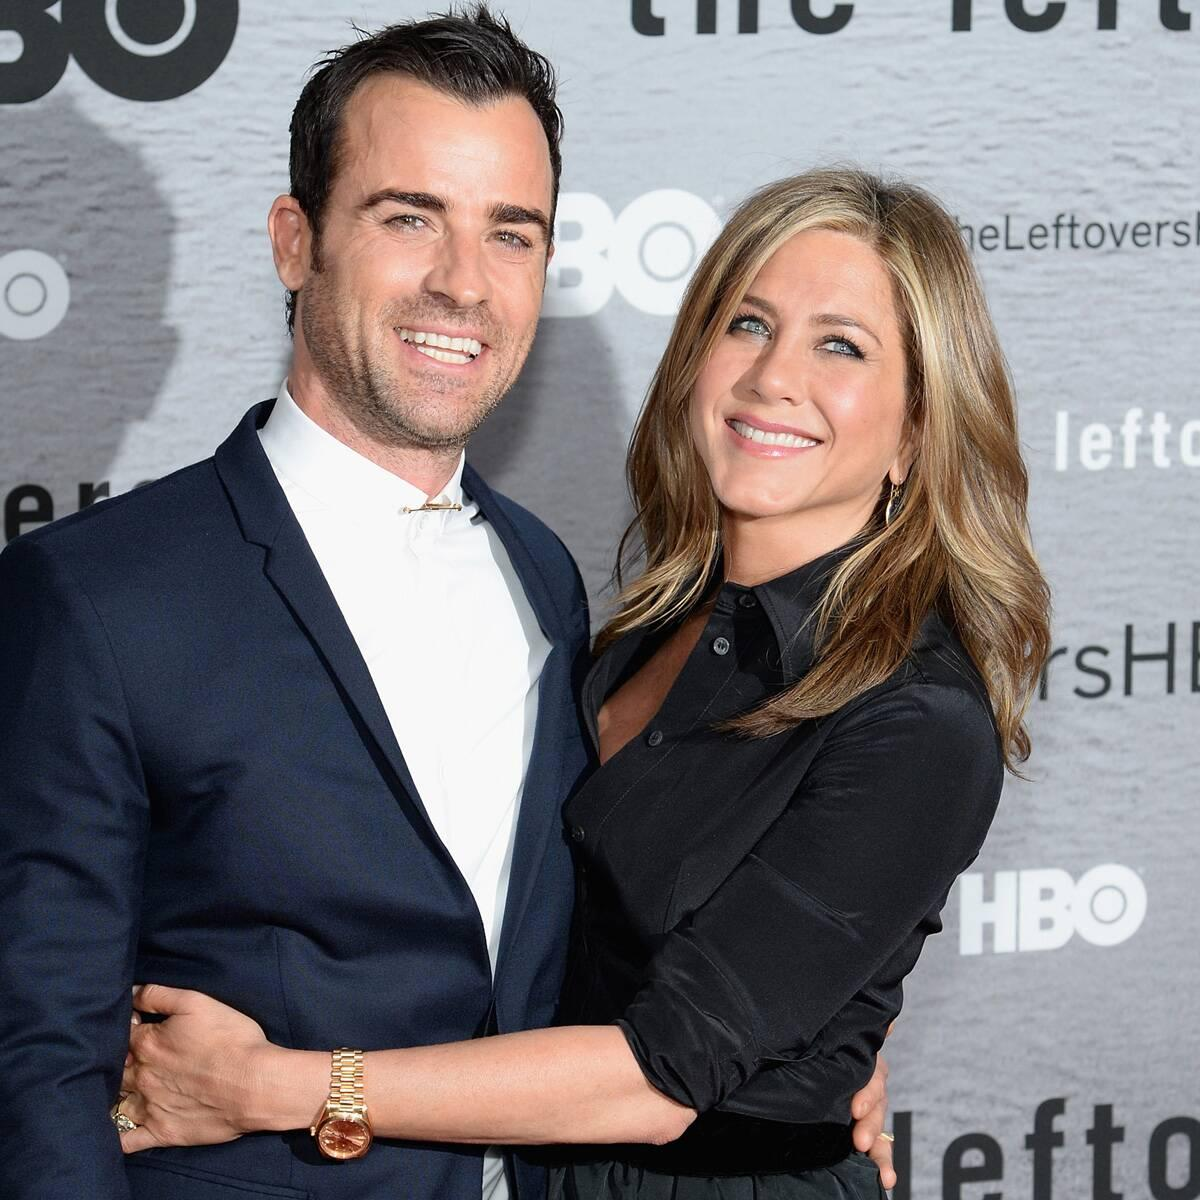 Jennifer Aniston Shares Shirtless Photo of Ex Justin Theroux in Birthday Tribute